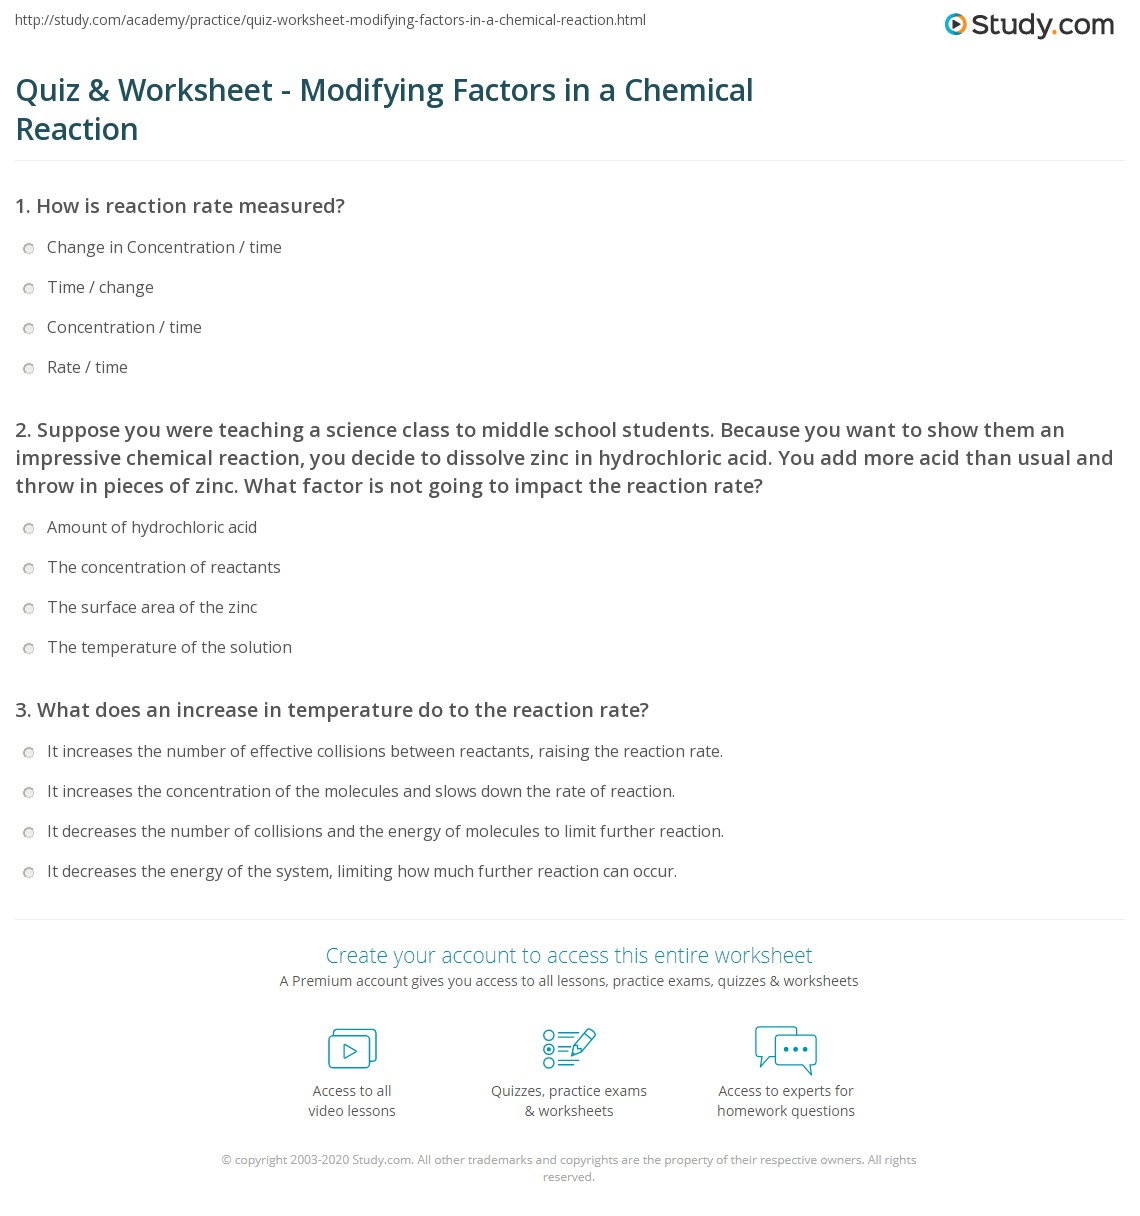 Worksheets Bill Nye Chemical Reactions Worksheet chemical reaction worksheets bill nye reactions worksheet by star materials